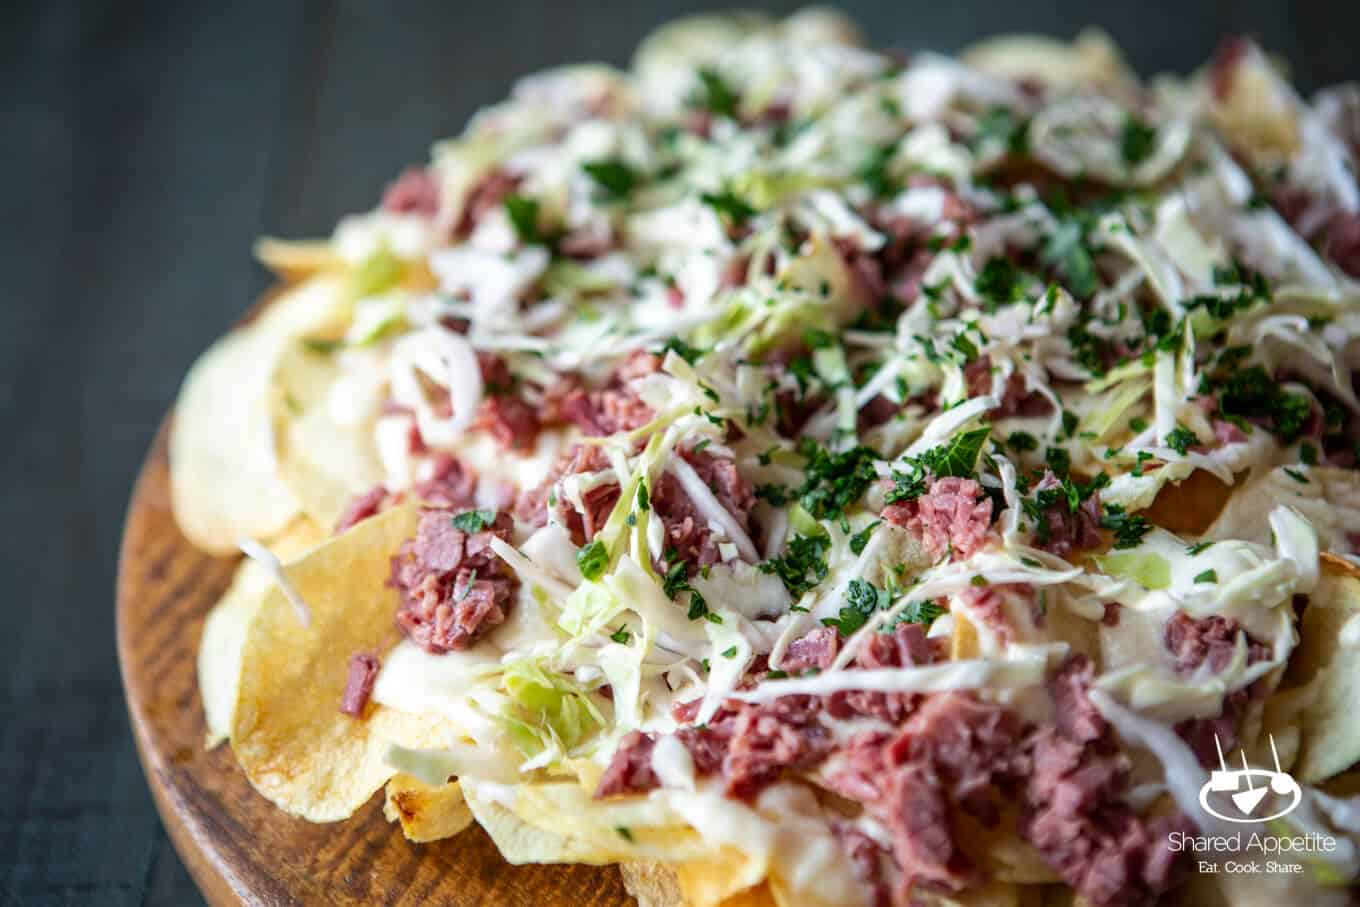 Irish Corned Beef Nachos with Swiss Cheese Queso and Pickled Cabbage for St. Patrick's Day | sharedappetite.com